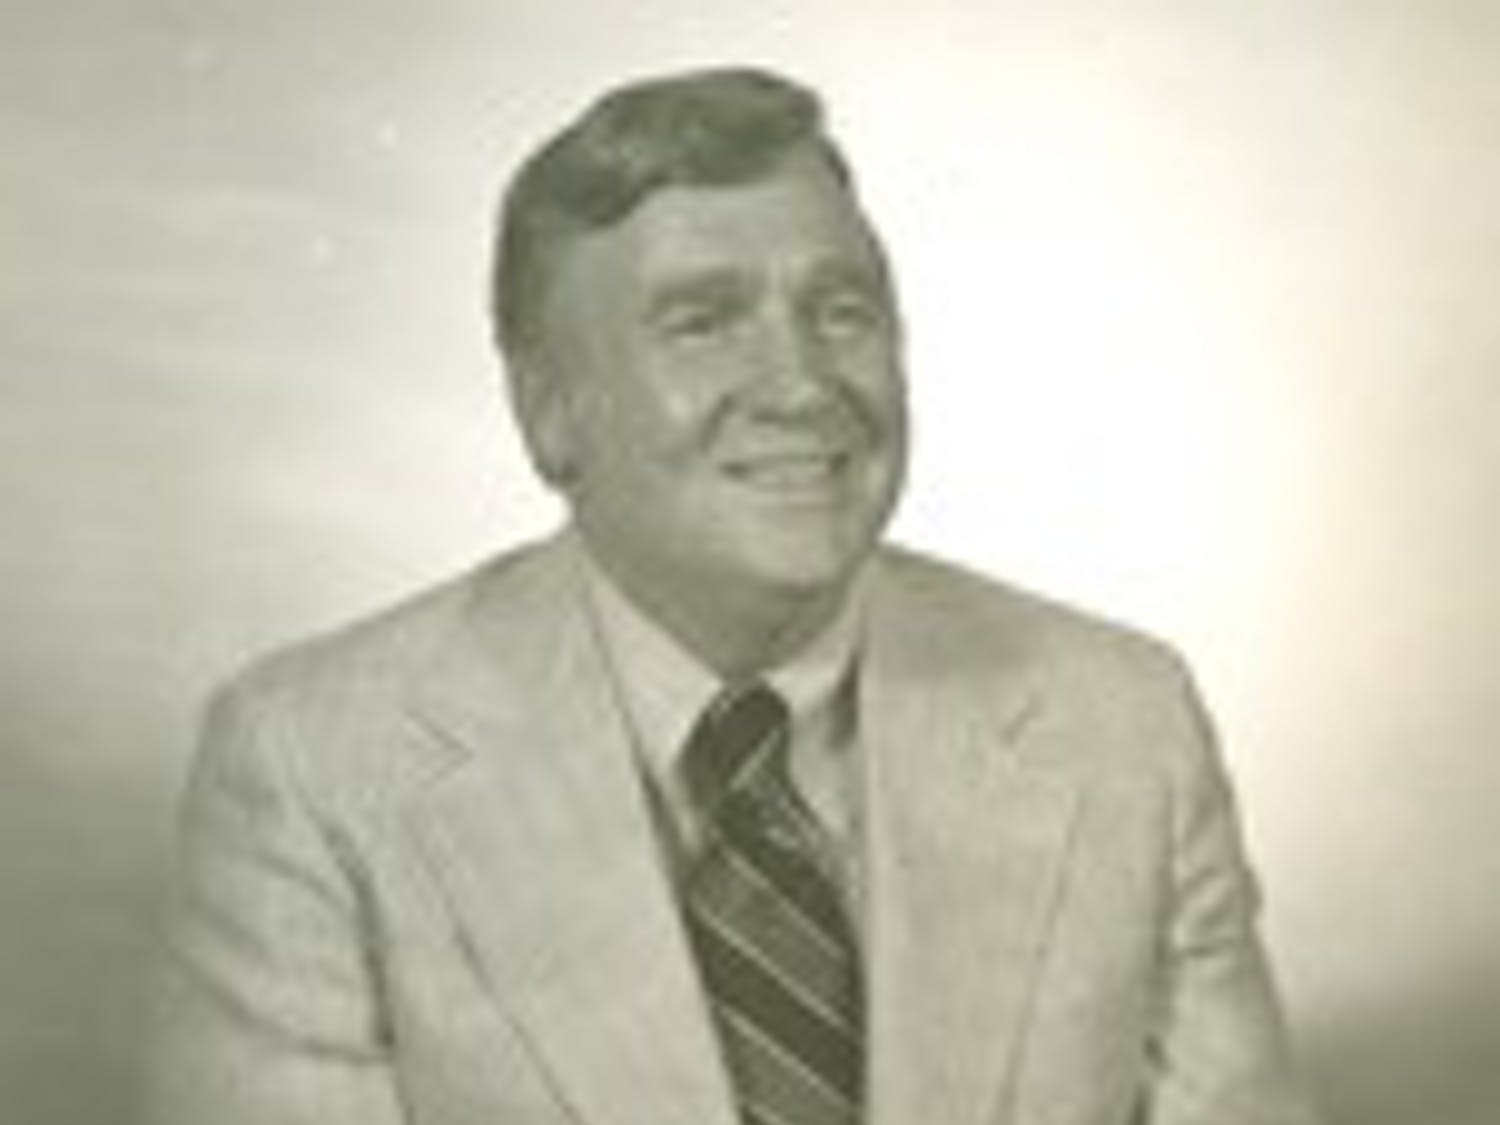 Wilson served as Duke's head coach from 1979 to 1982.